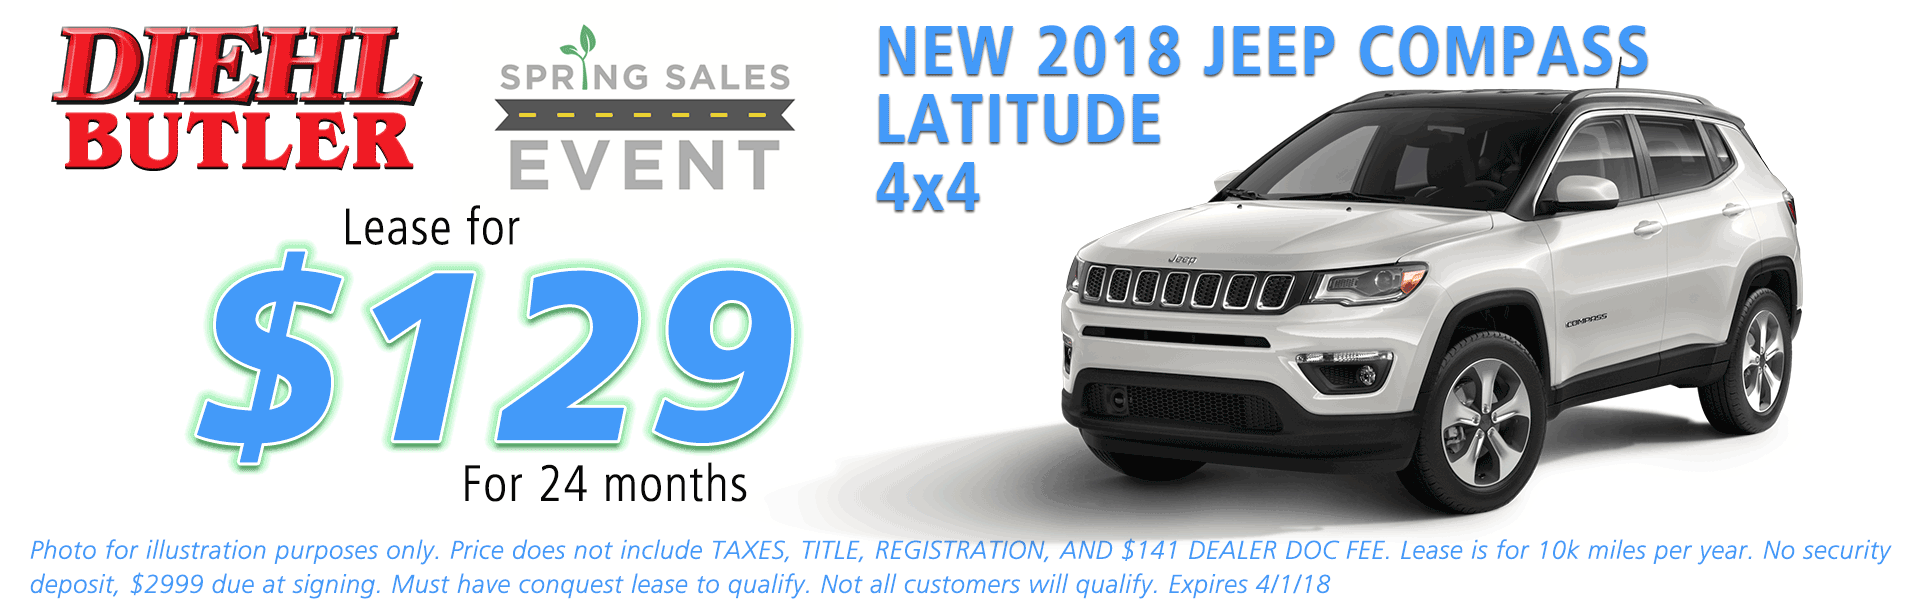 NEW 2018 JEEP COMPASS LATITUDE 4X4 diehl chrysler jeep dodge ram serving butler cranberry mars saxonburg and pittsburgh